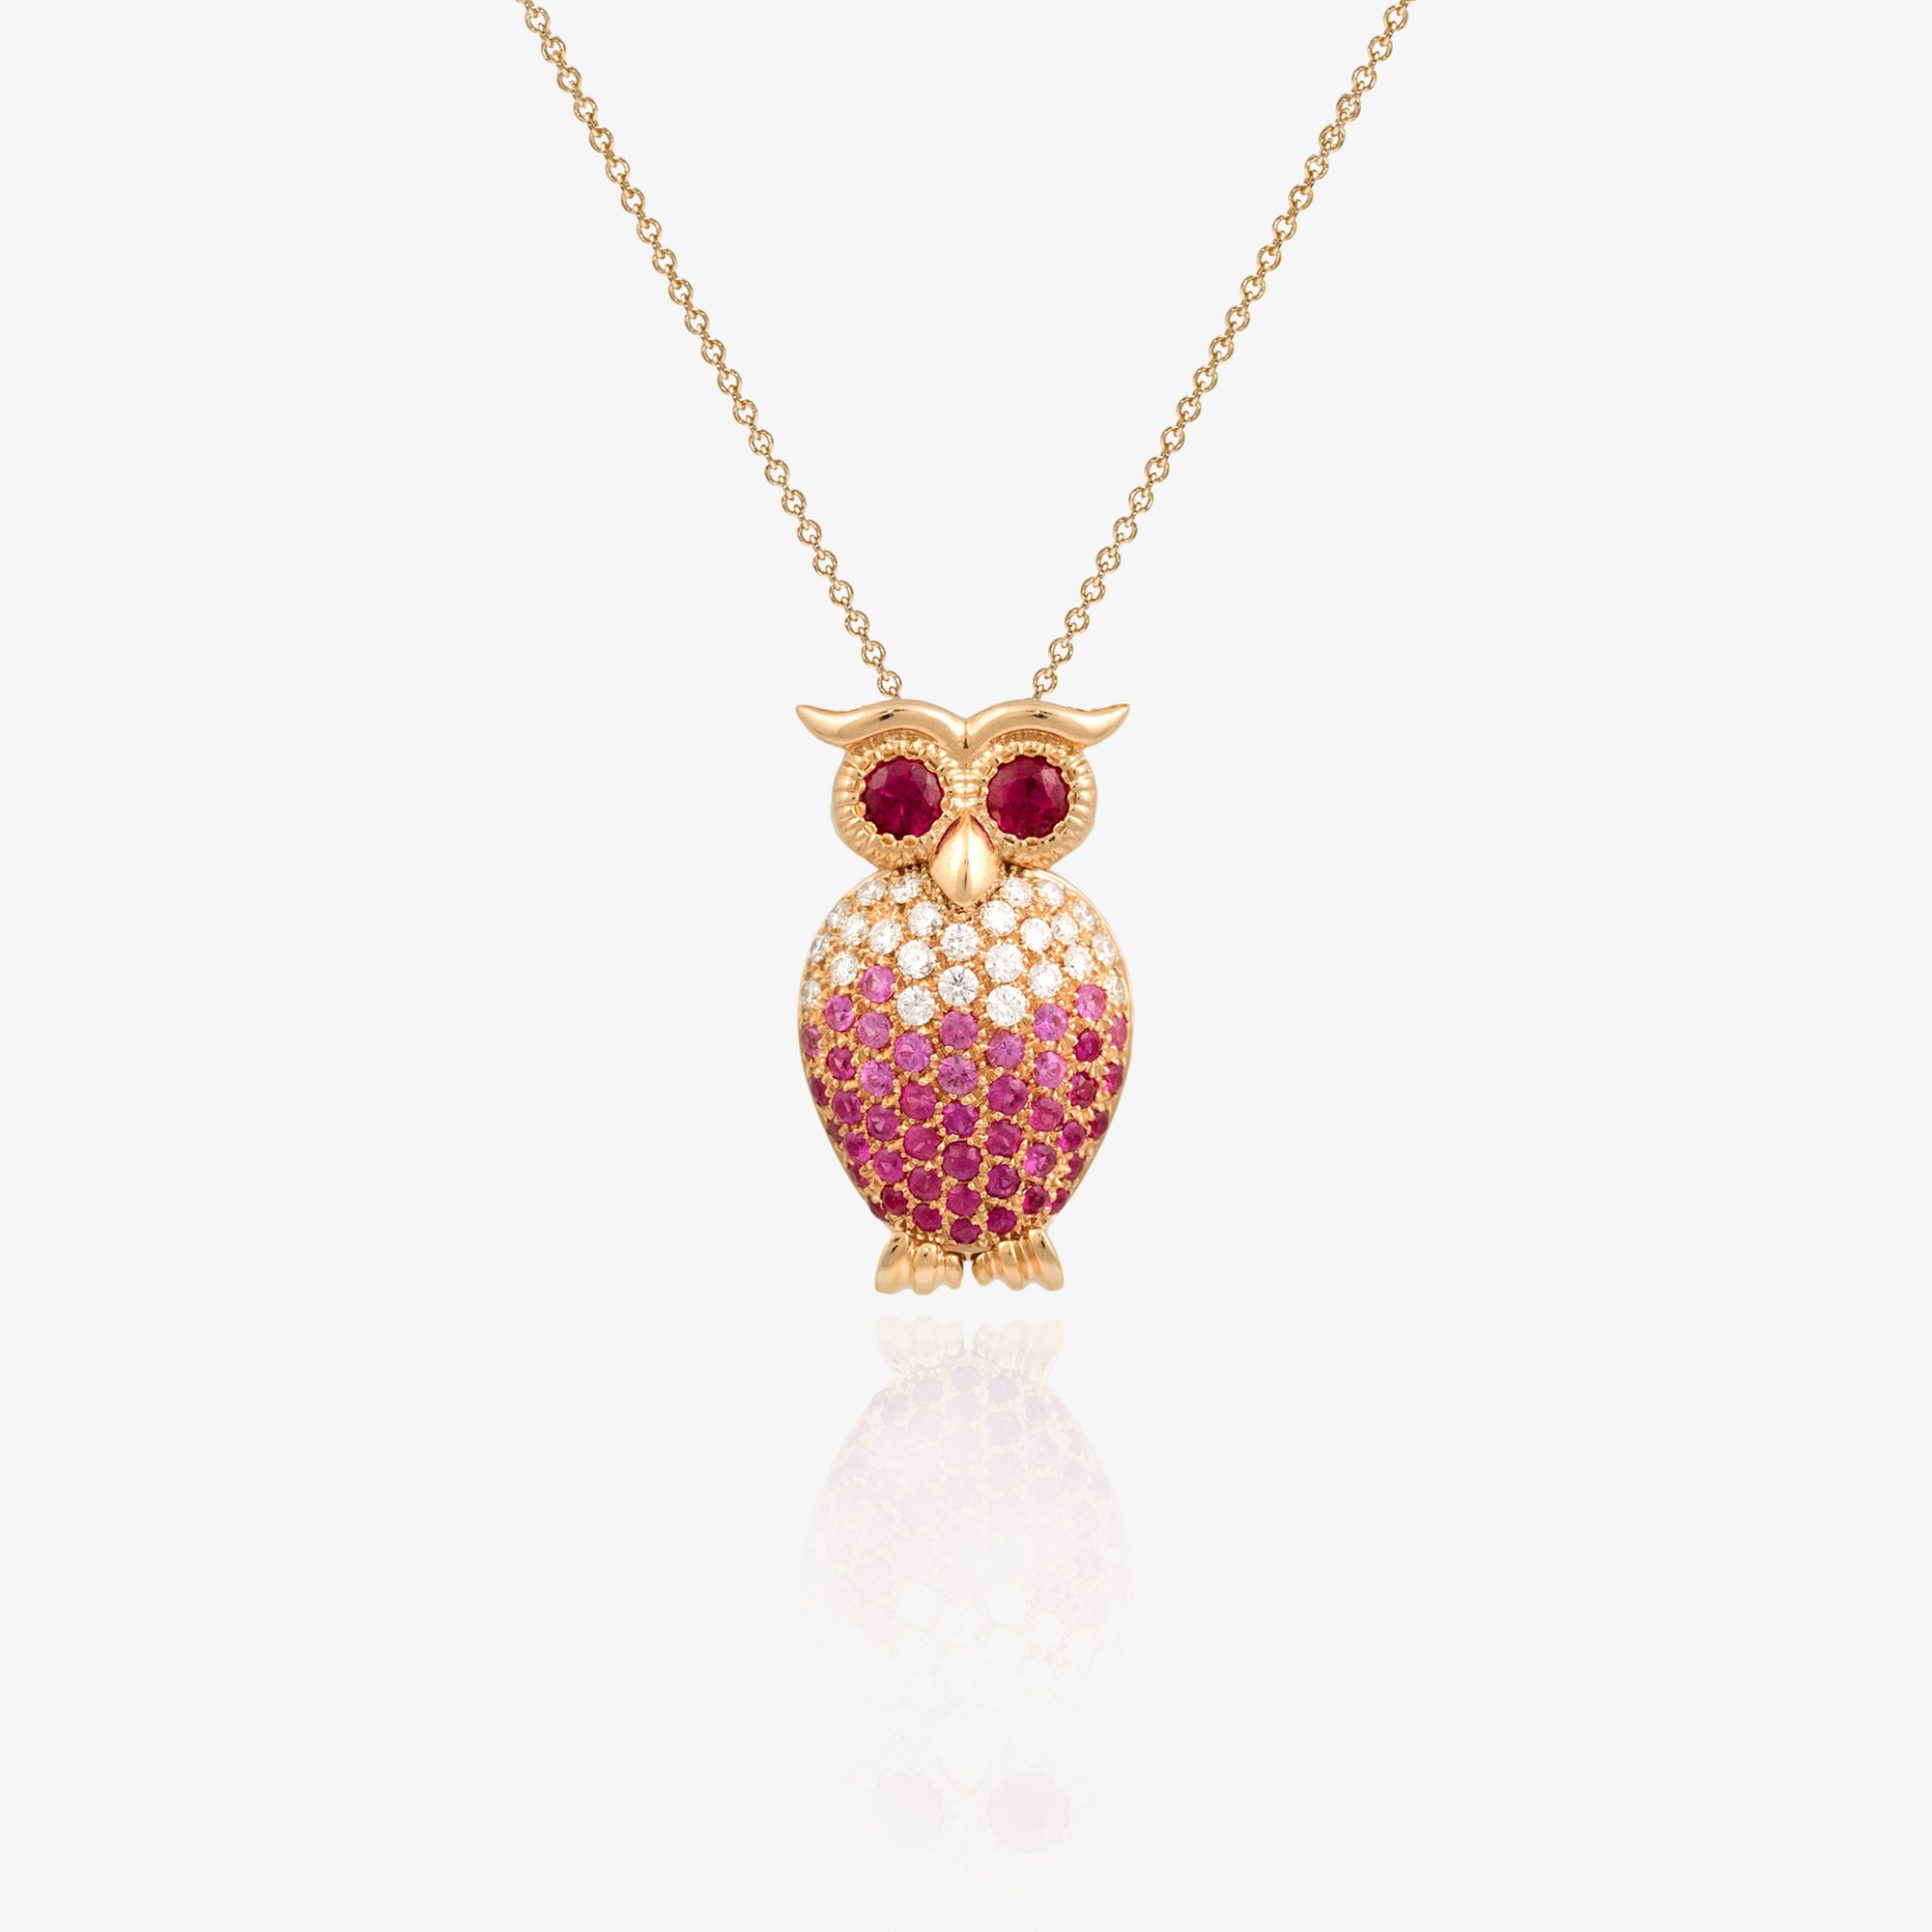 Eagle-owl necklace